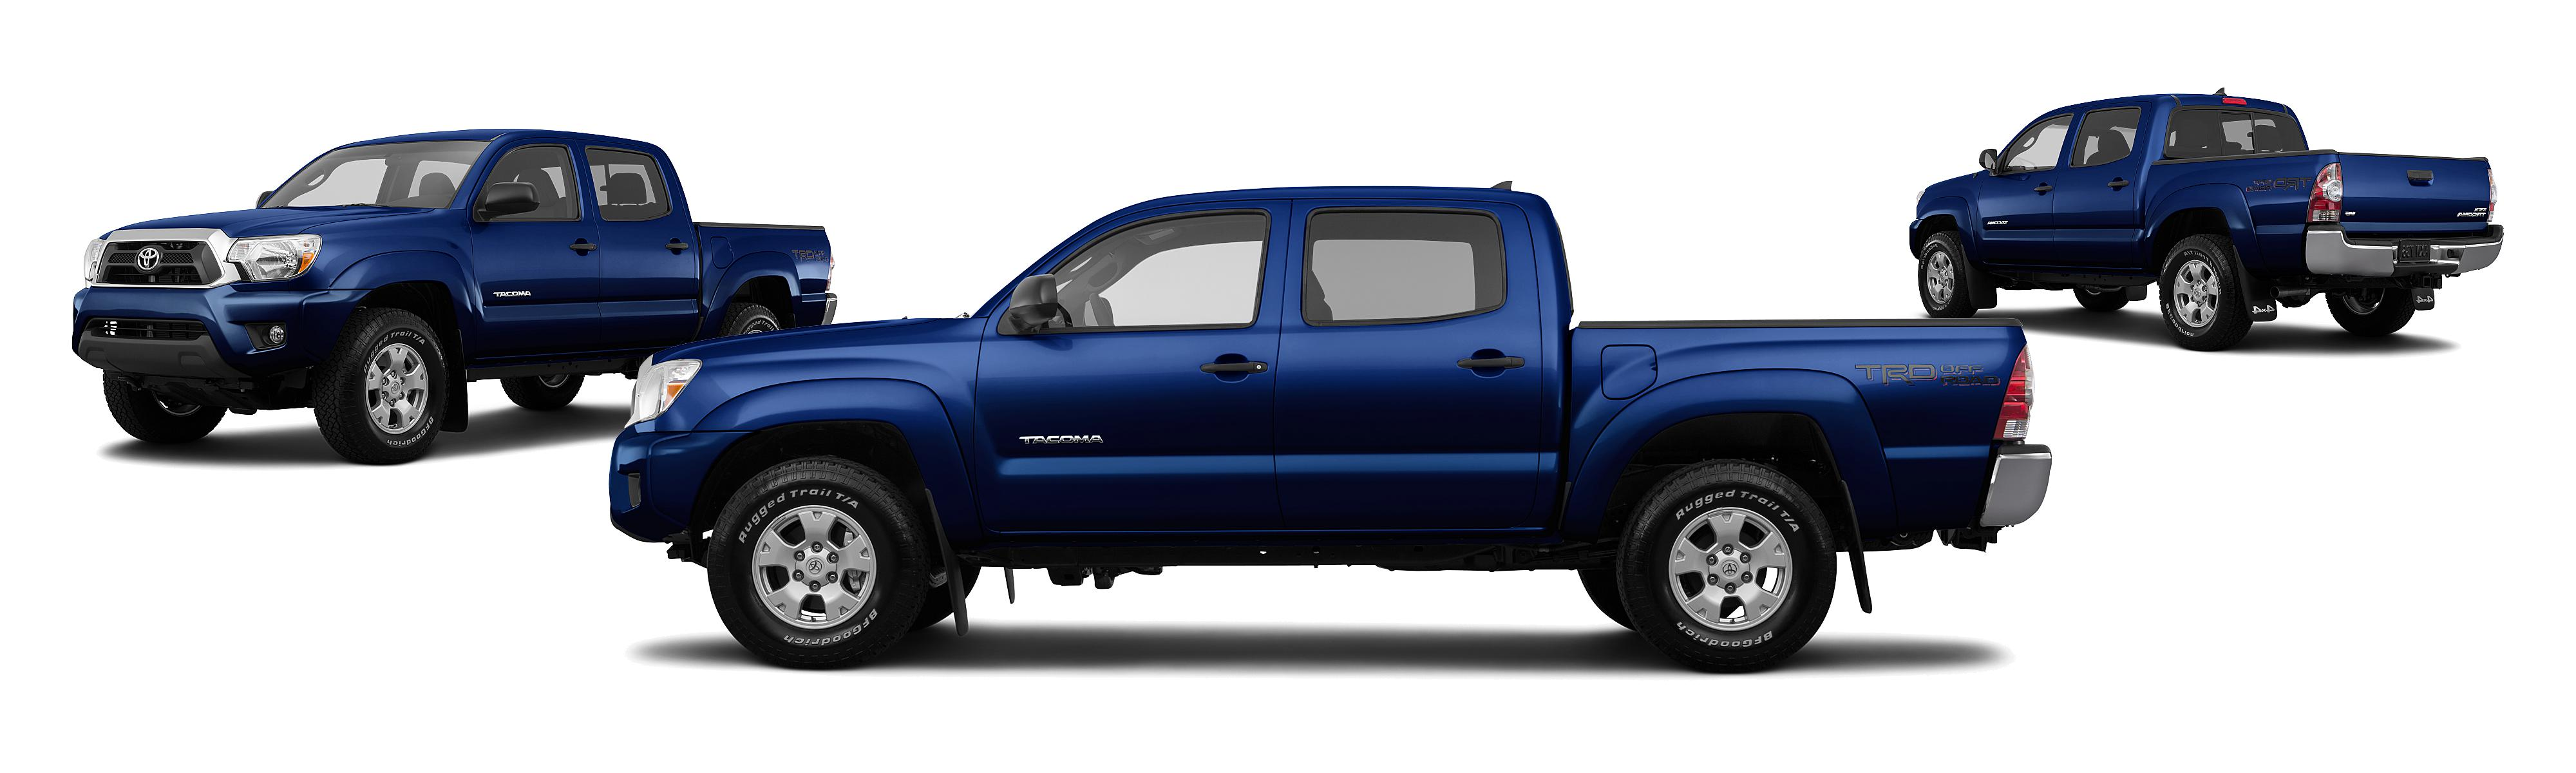 2015 Toyota Ta a 4x4 V6 4dr Double Cab 5 0 ft SB 6M Research